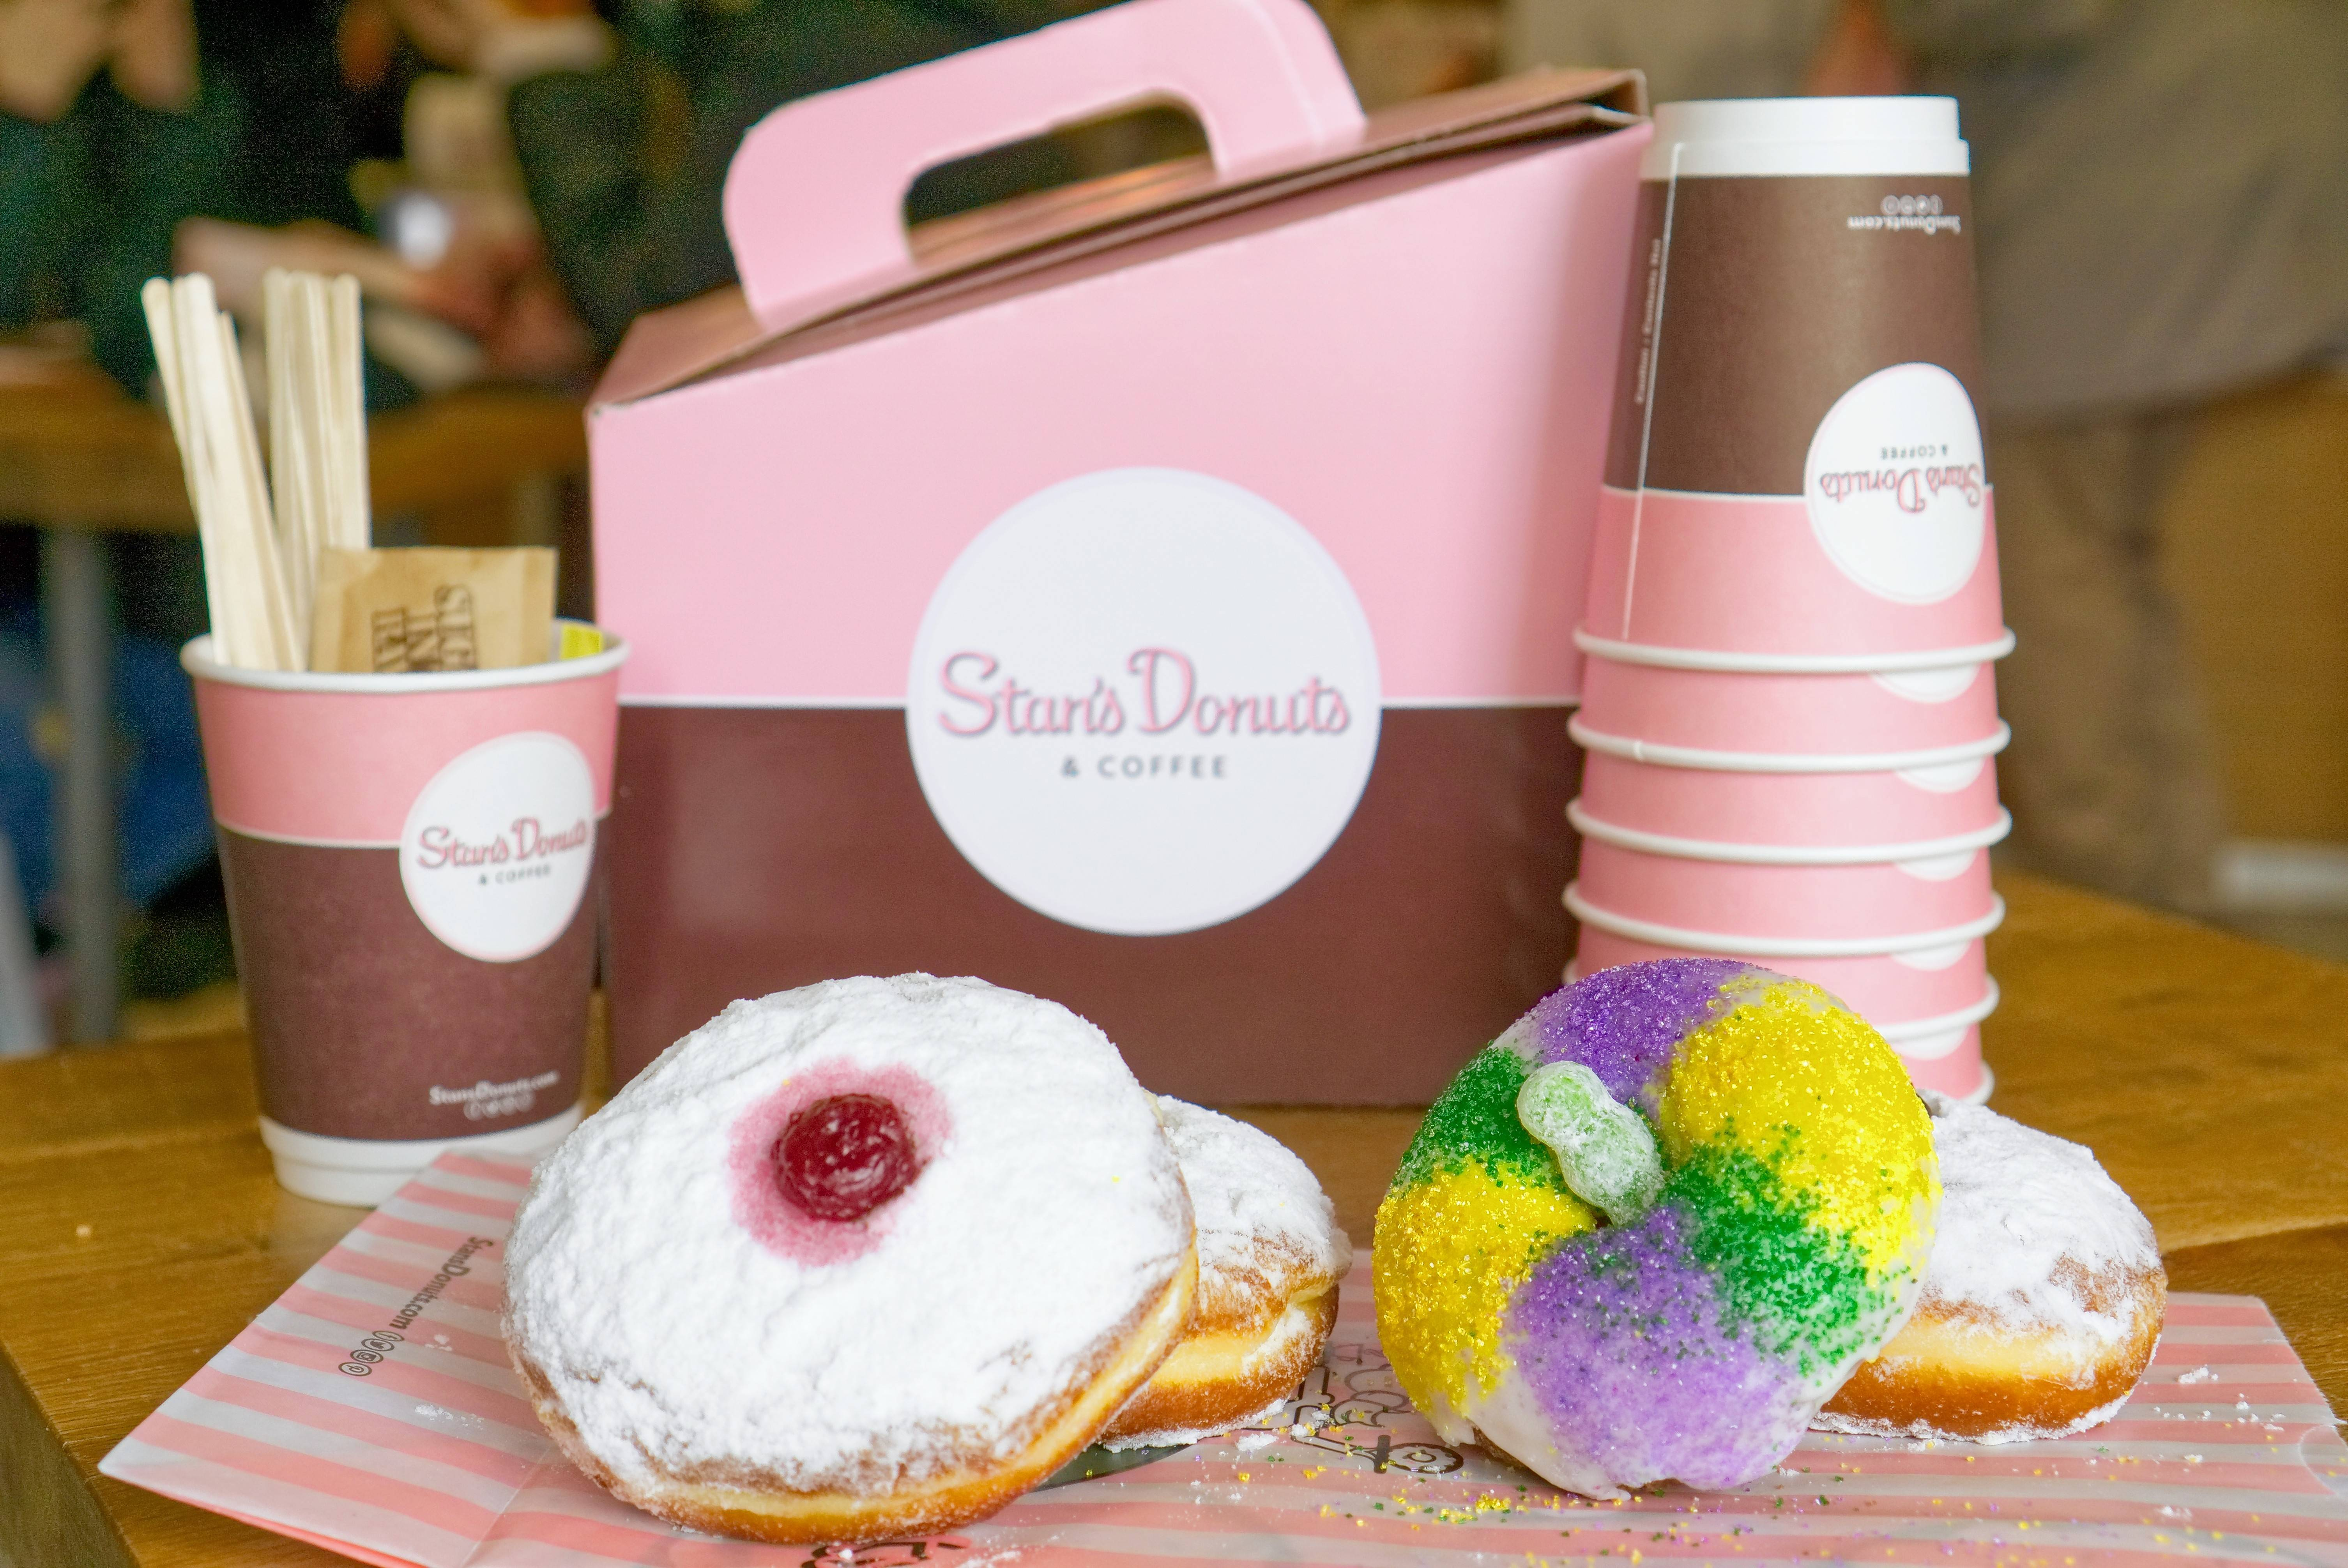 Indulge your sweet tooth March 1-5 with Stan's Donuts' Paczkis or King Cake Donut.